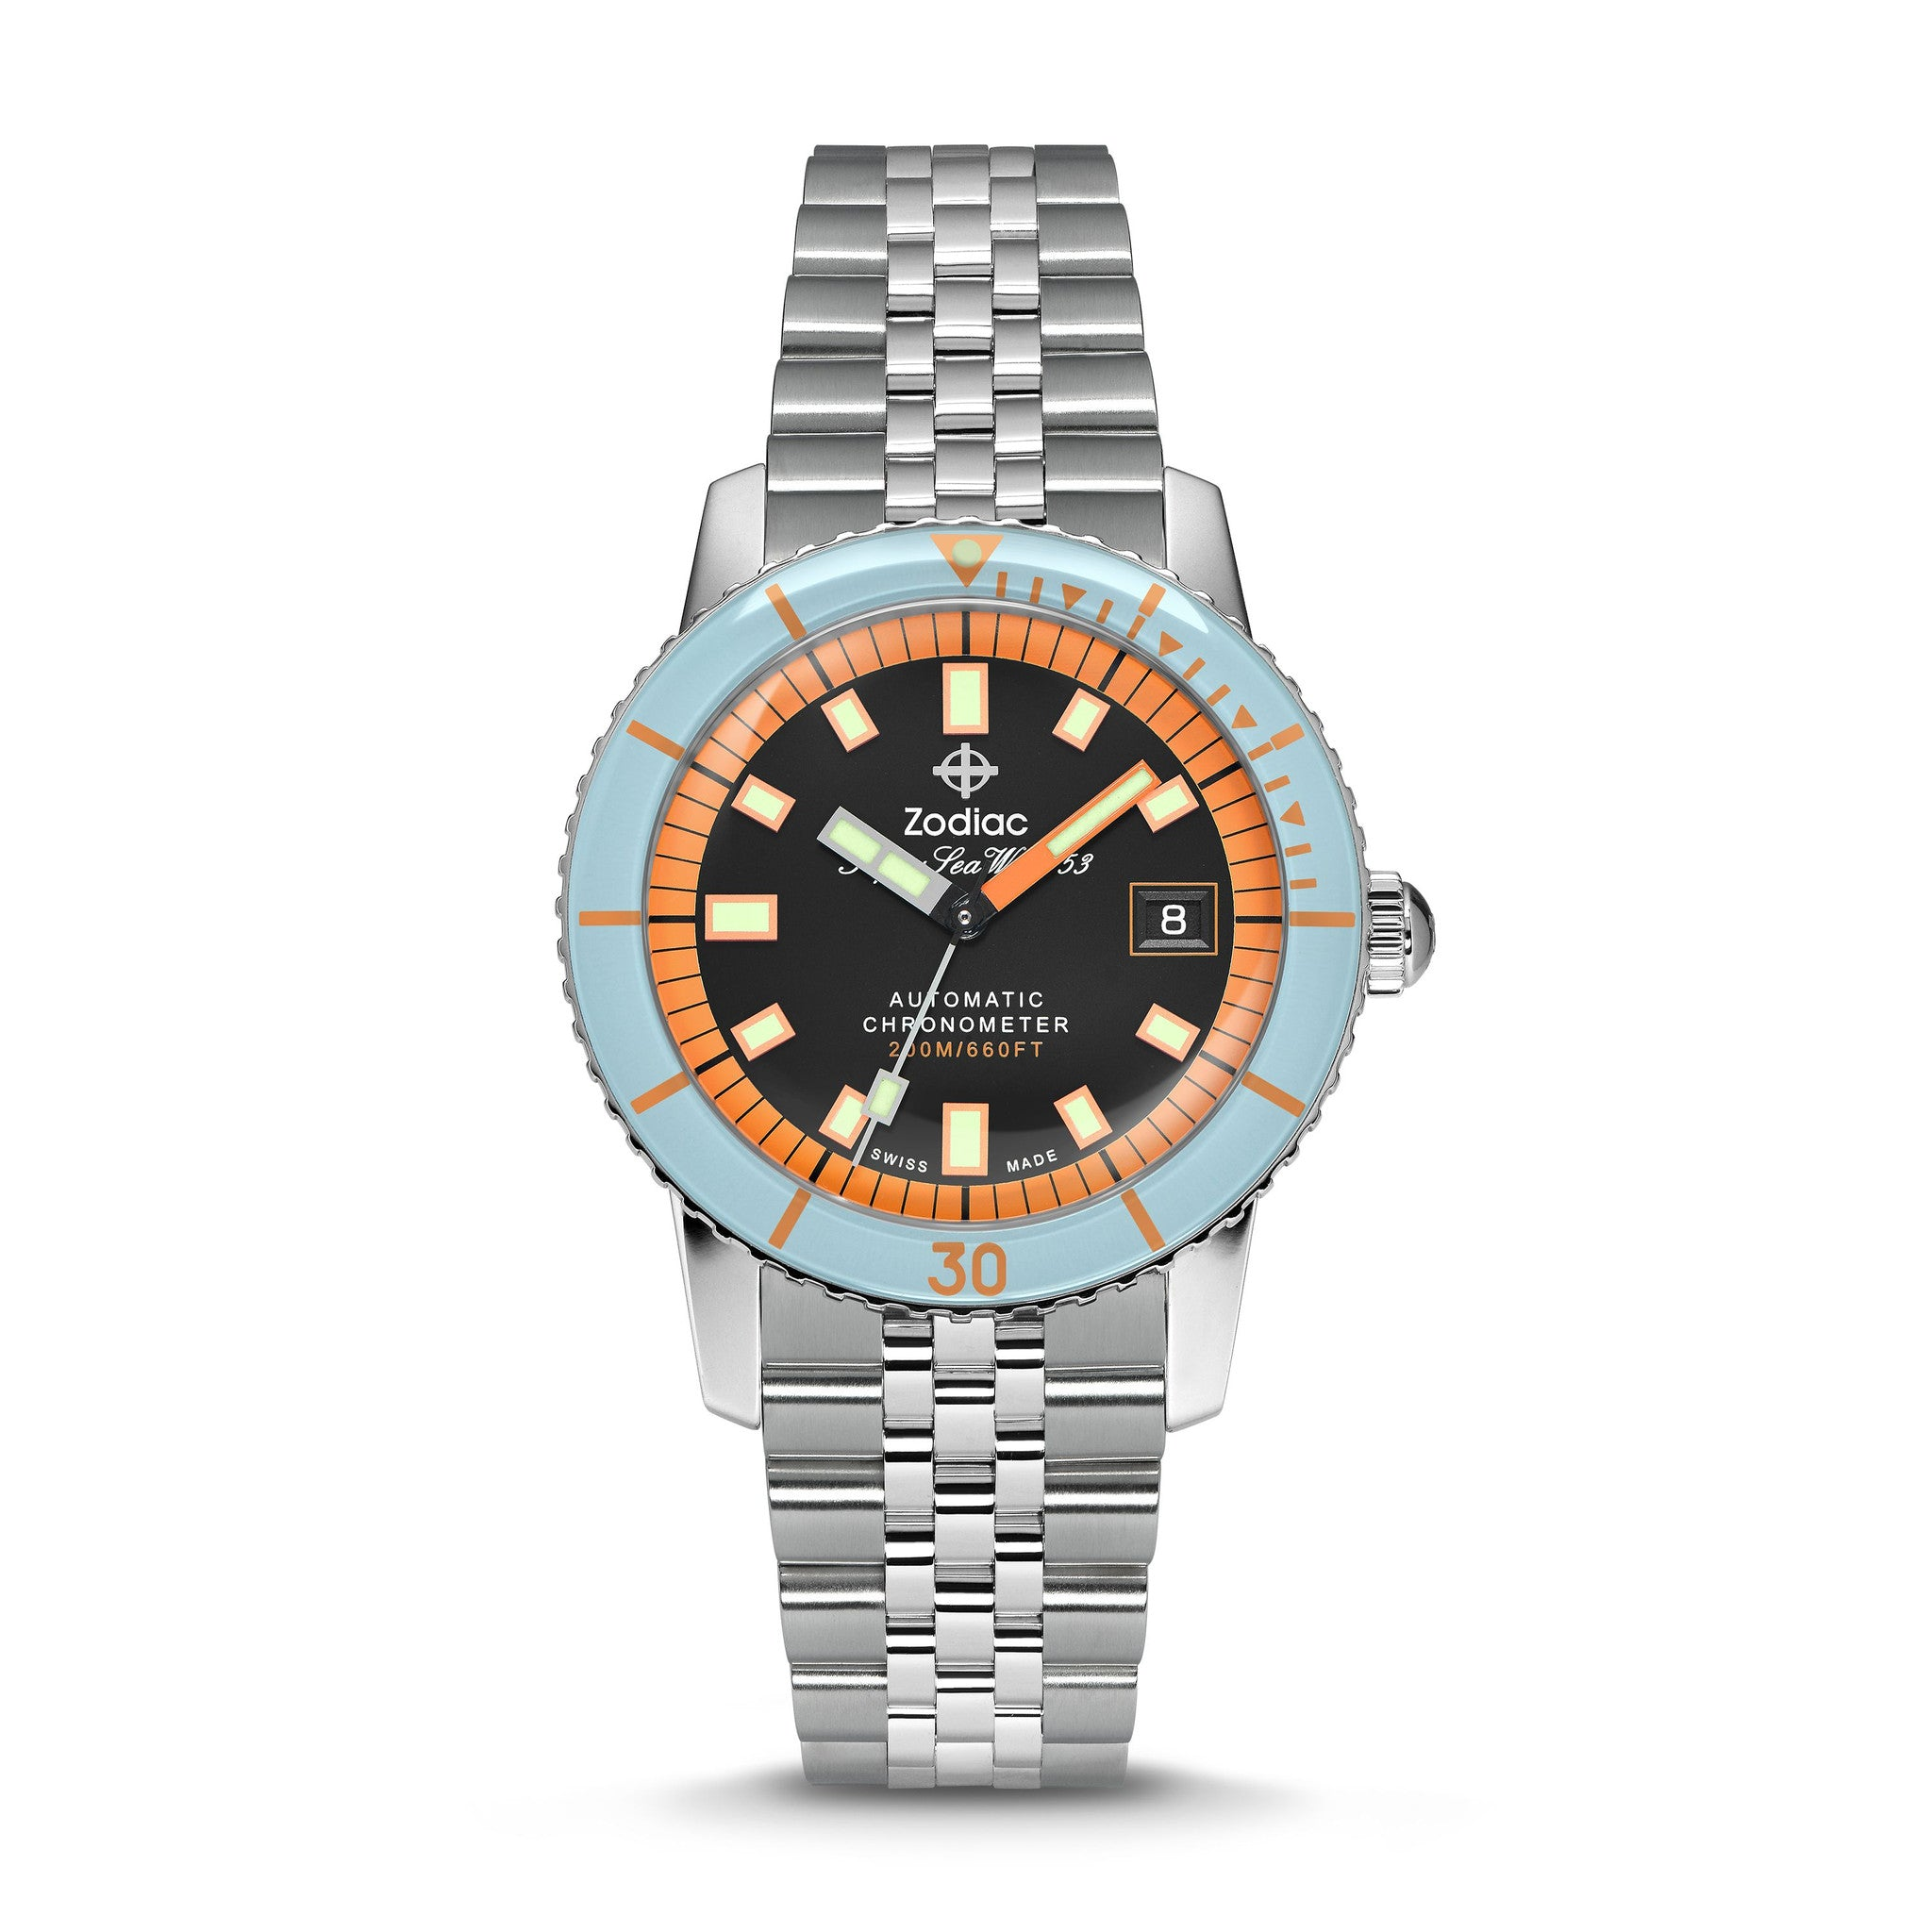 SUPER SEA WOLF AUTOMATIC STAINLESS STEEL WATCH